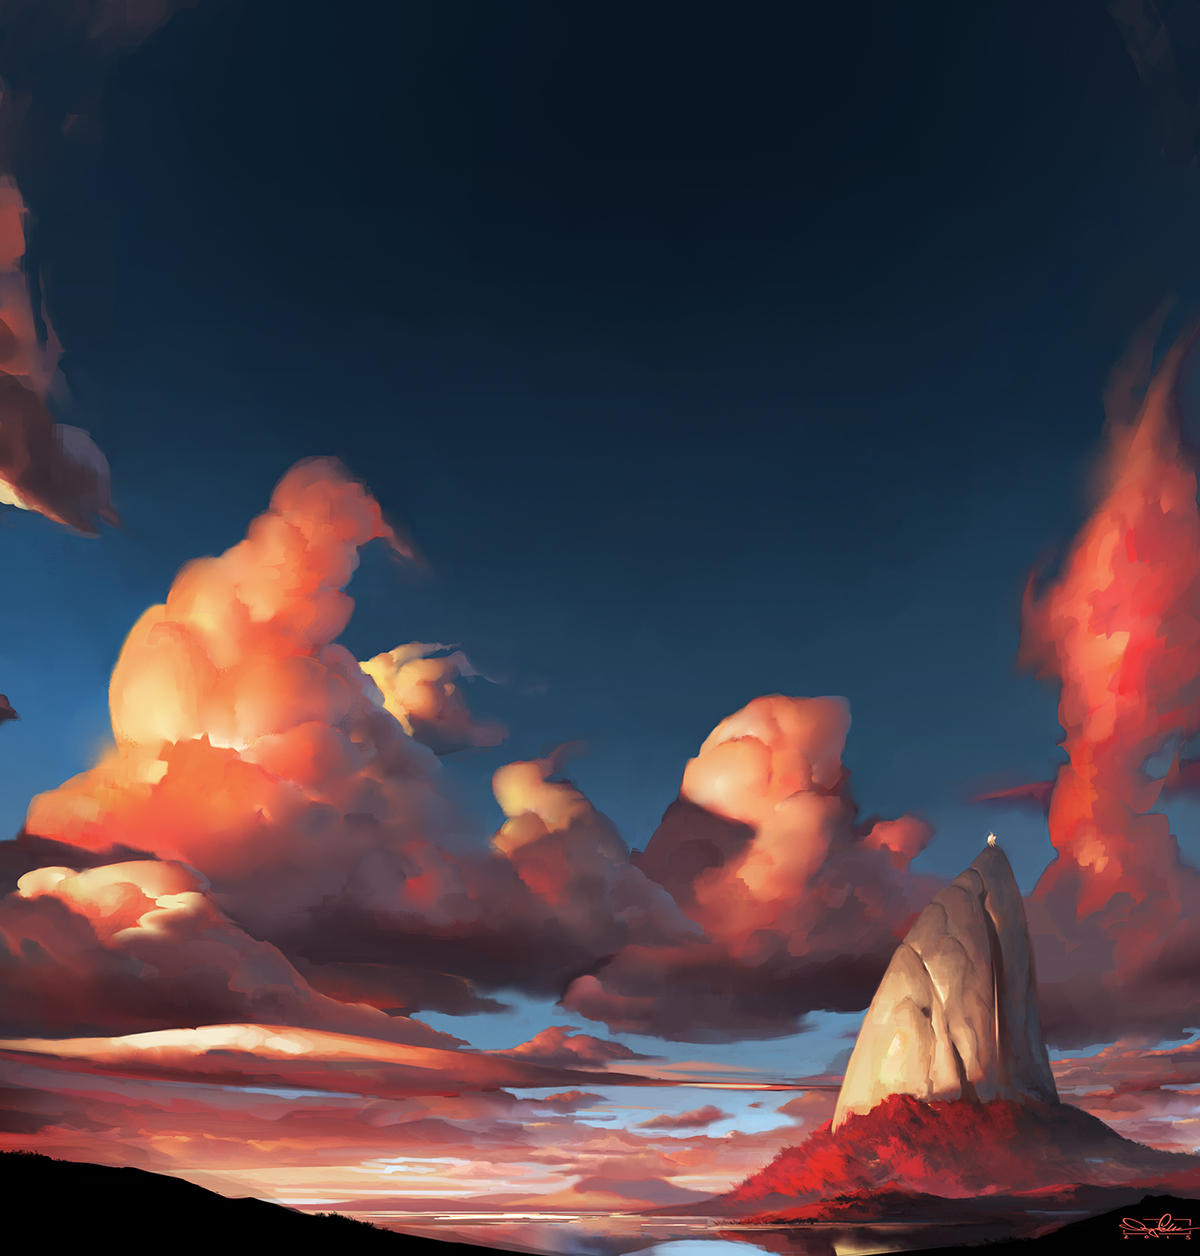 RGB.vn_A Series on Painterly Landscapes - Sergio Chaves